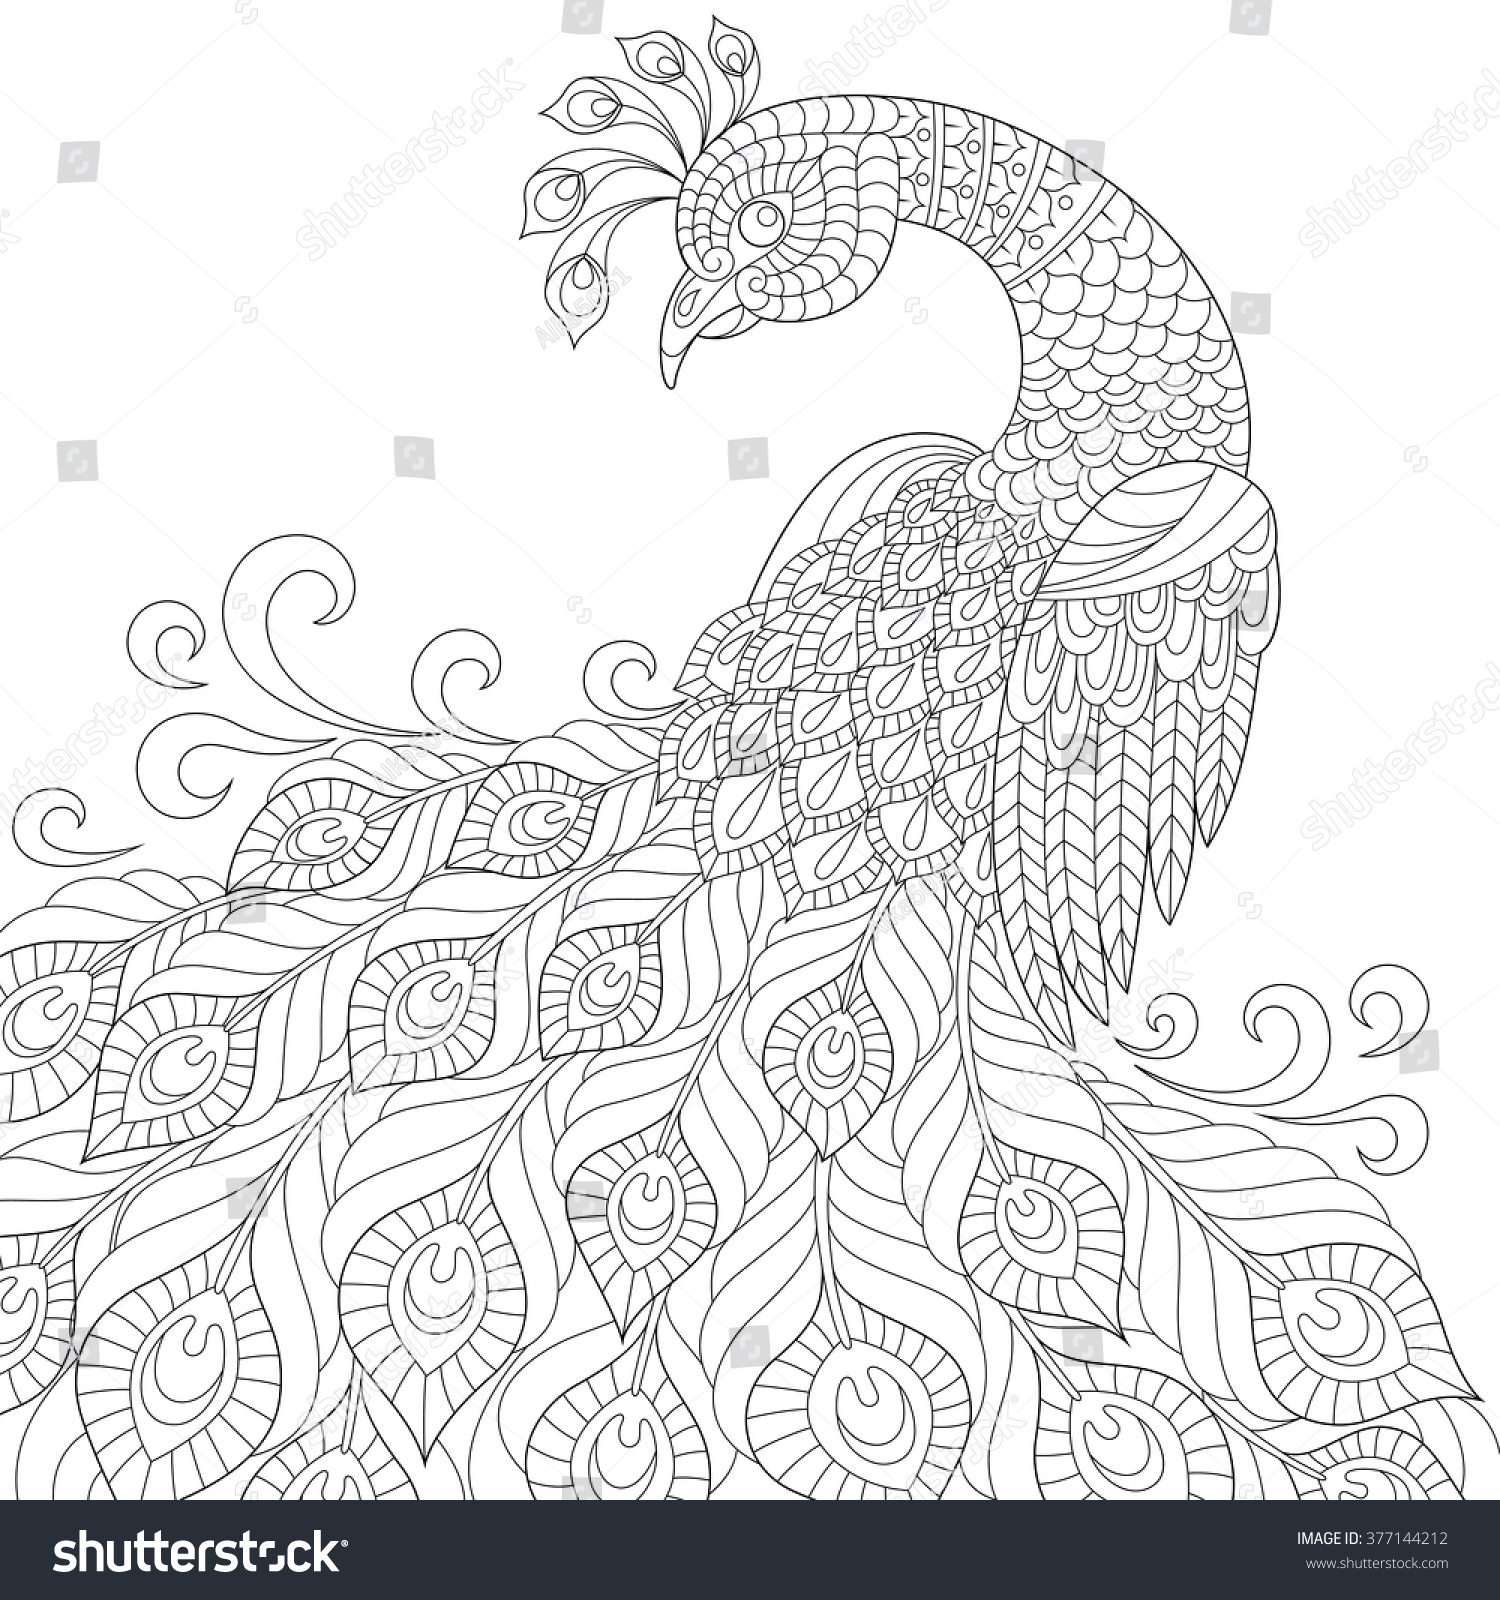 Coloring pages peacock - Decorative Peacock Adult Anti Stress Coloring Page Black And White Hand Drawn Doodle